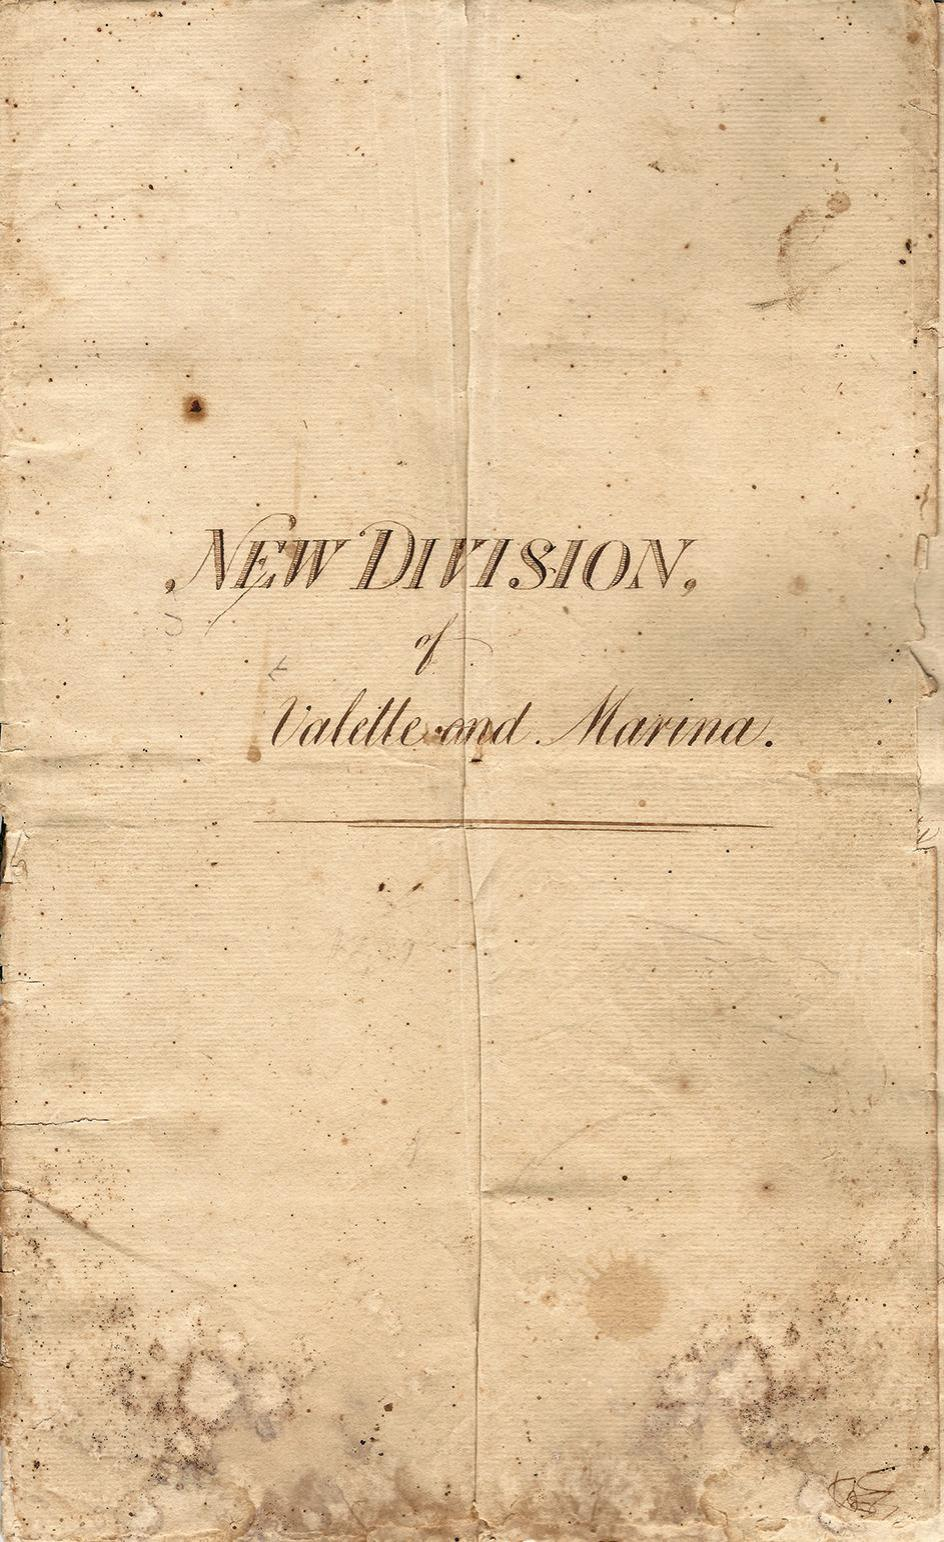 The cover page of the 'New Division' document.